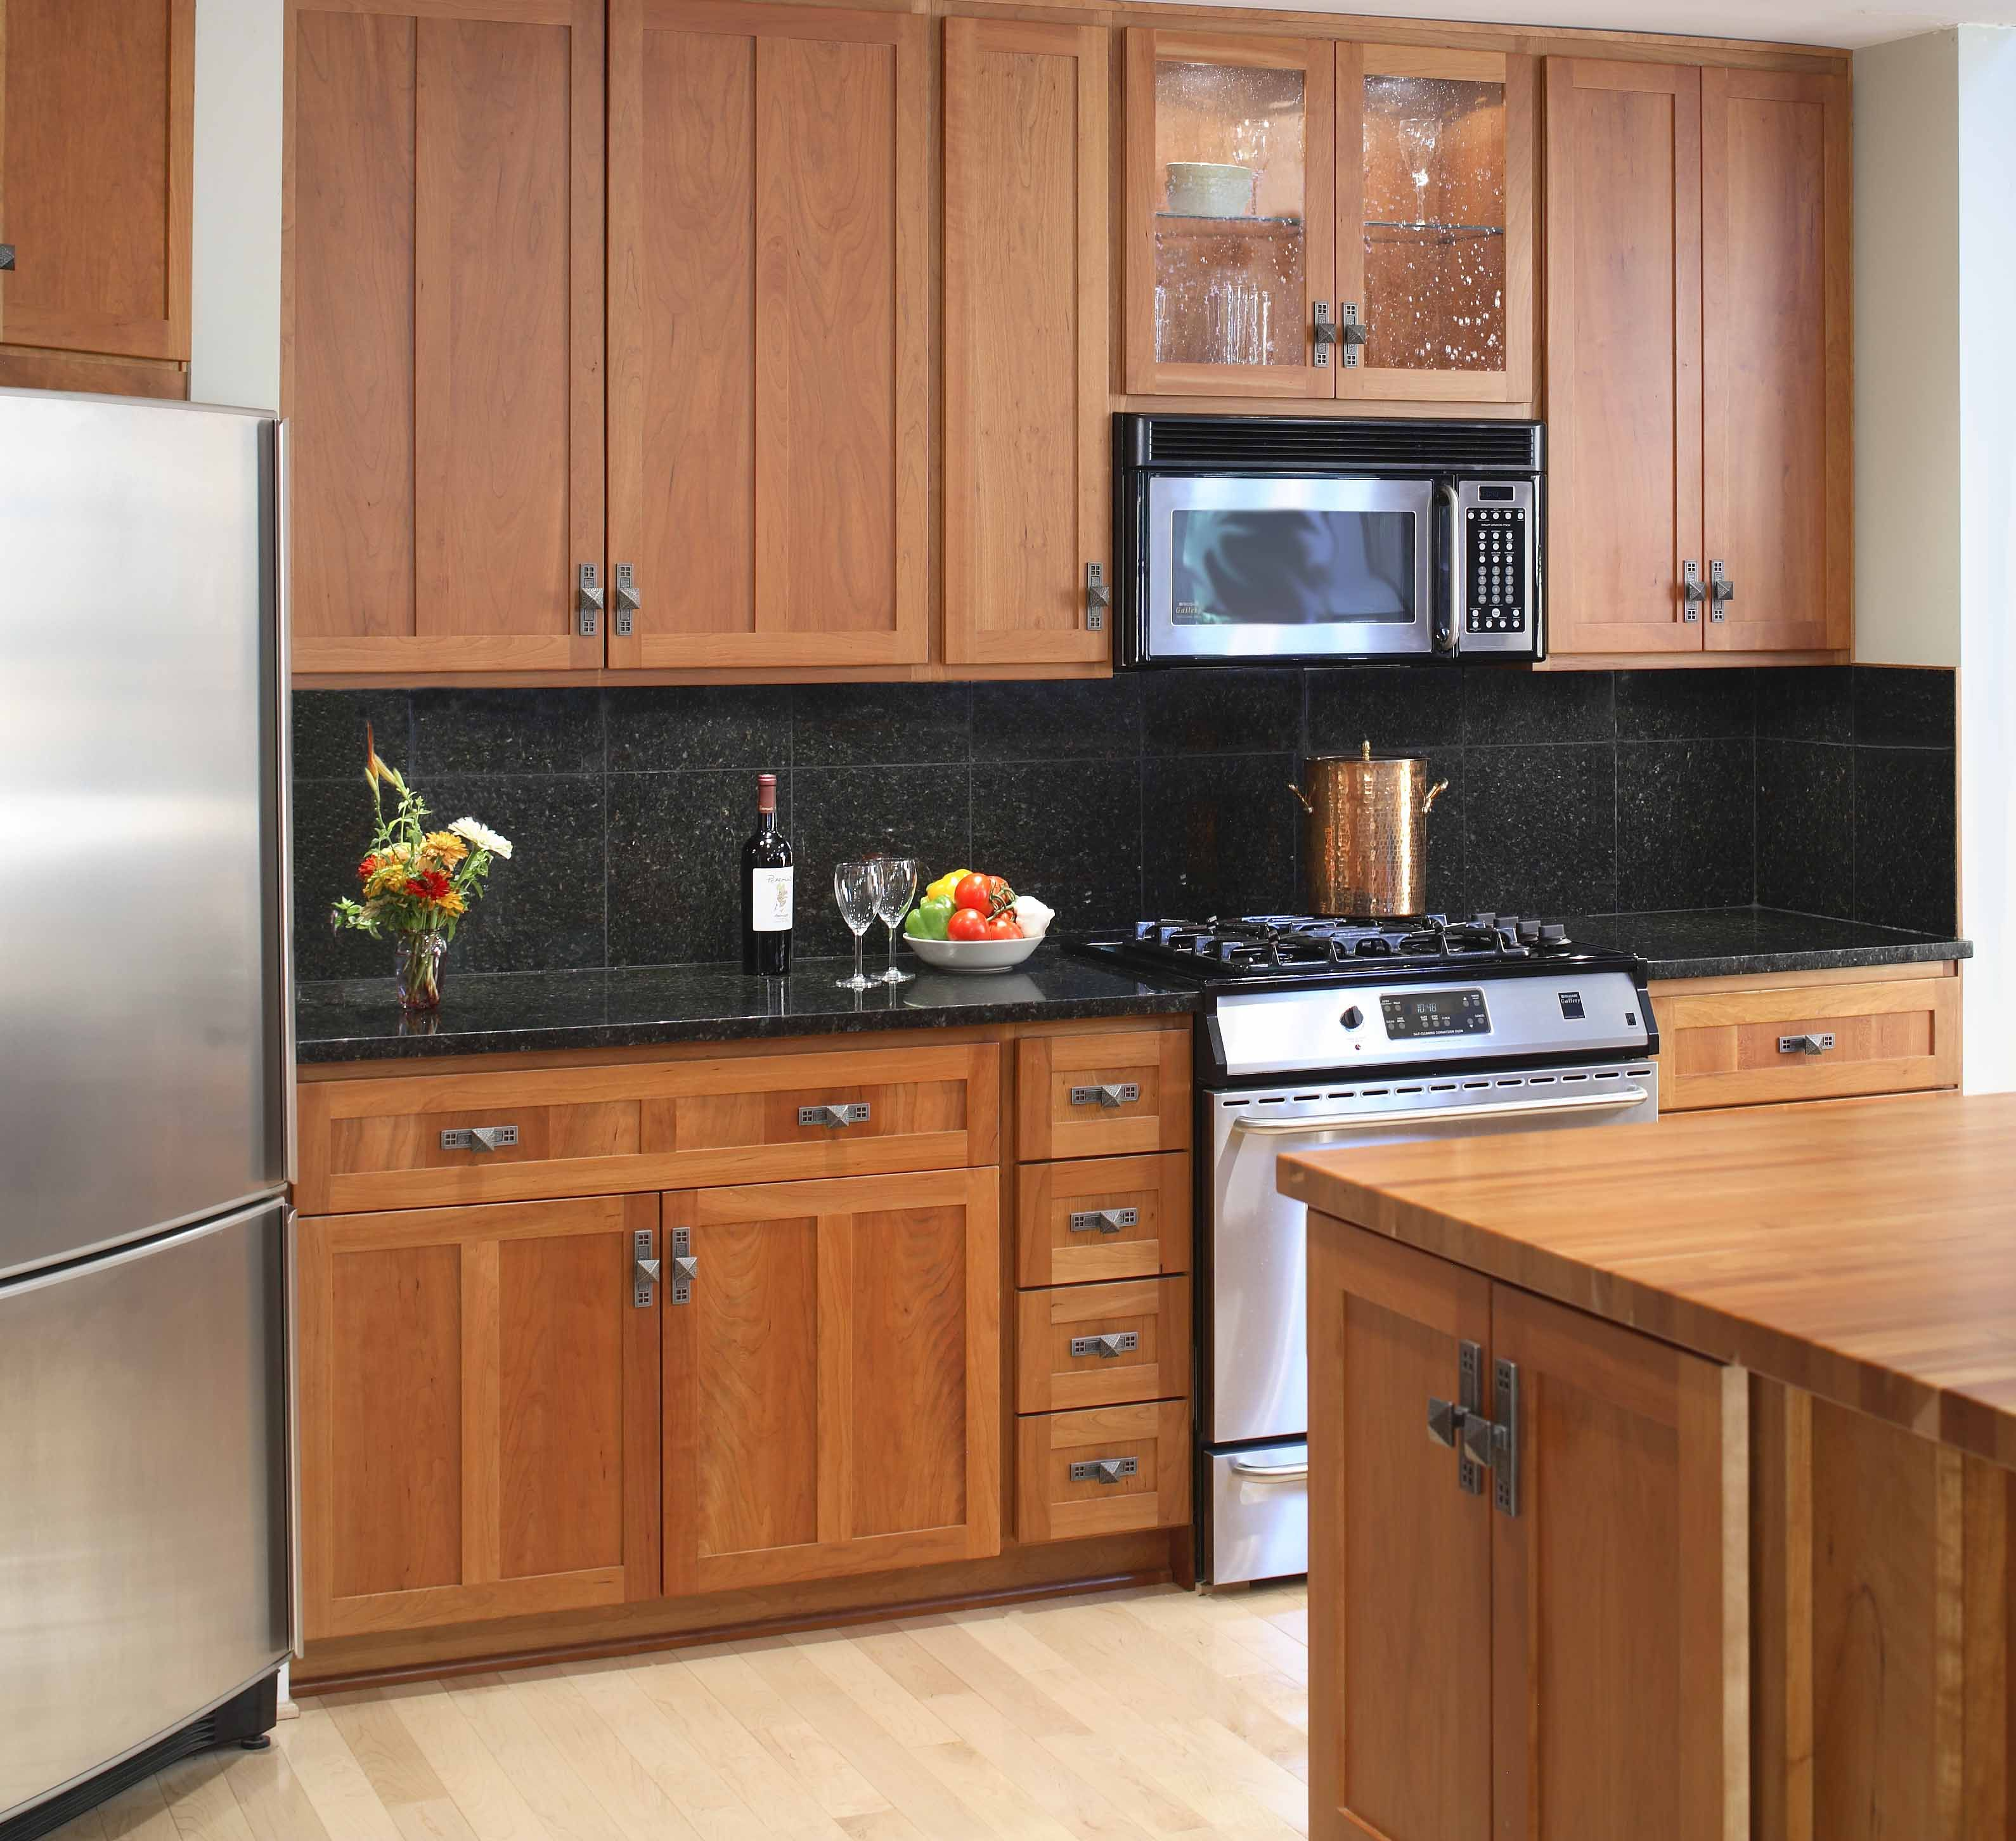 What color wood floor goes with maple cabinets good Kitchen colors with natural wood cabinets